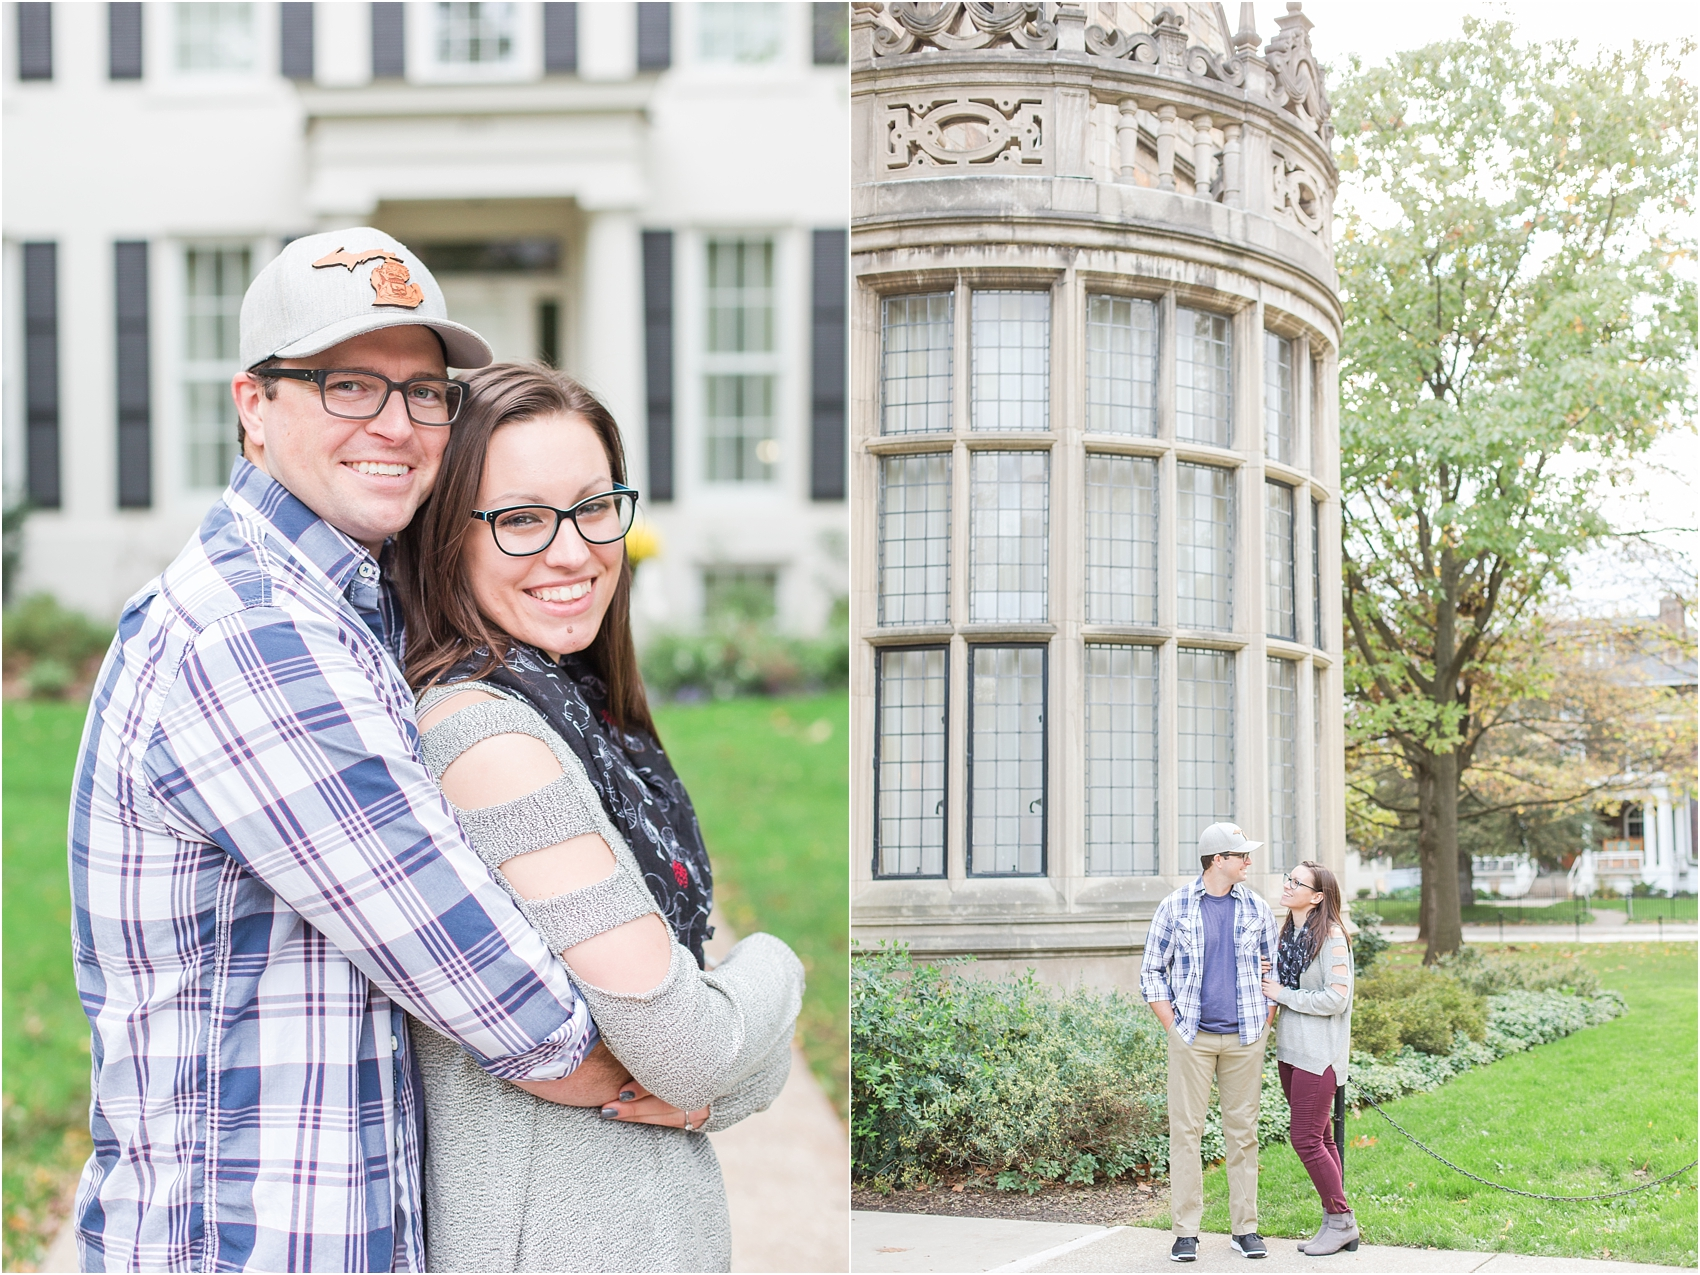 classic-fall-engagement-photos-at-the-university-of-michigan-in-ann-arbor-mi-by-courtney-carolyn-photography_0008.jpg